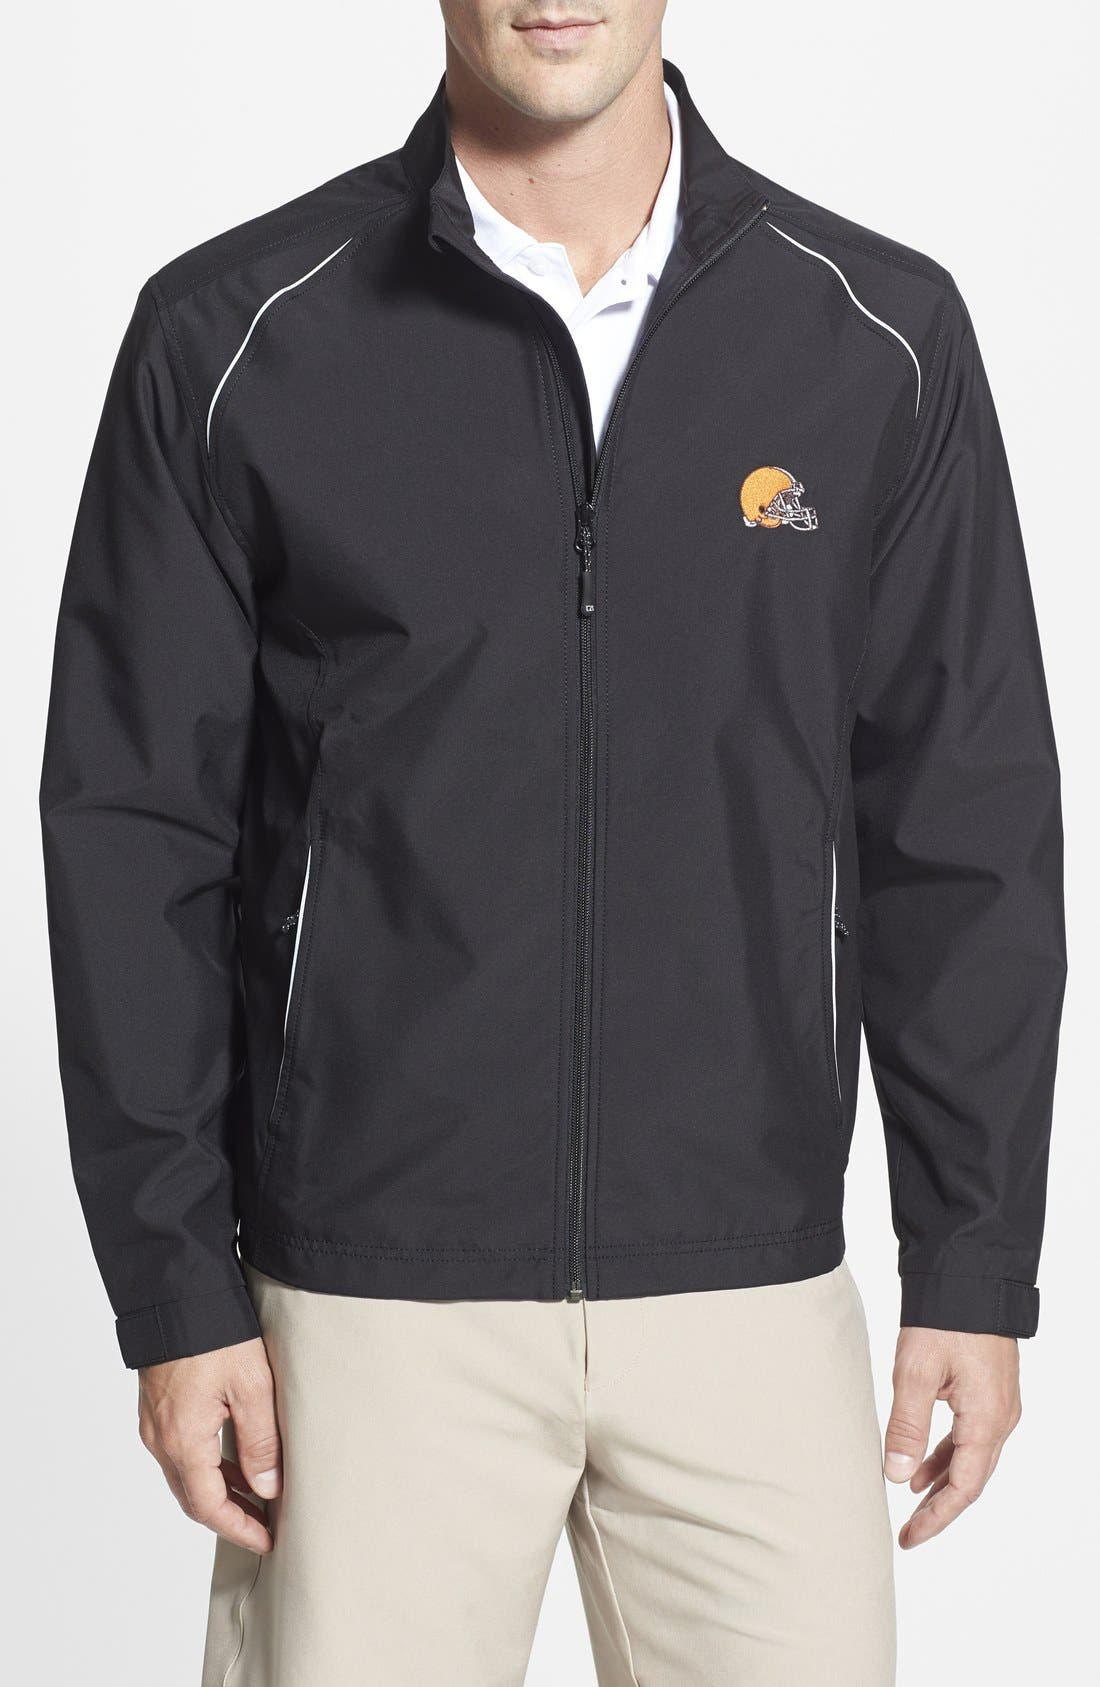 Cleveland Browns - Beacon WeatherTec Wind & Water Resistant Jacket,                         Main,                         color, Black